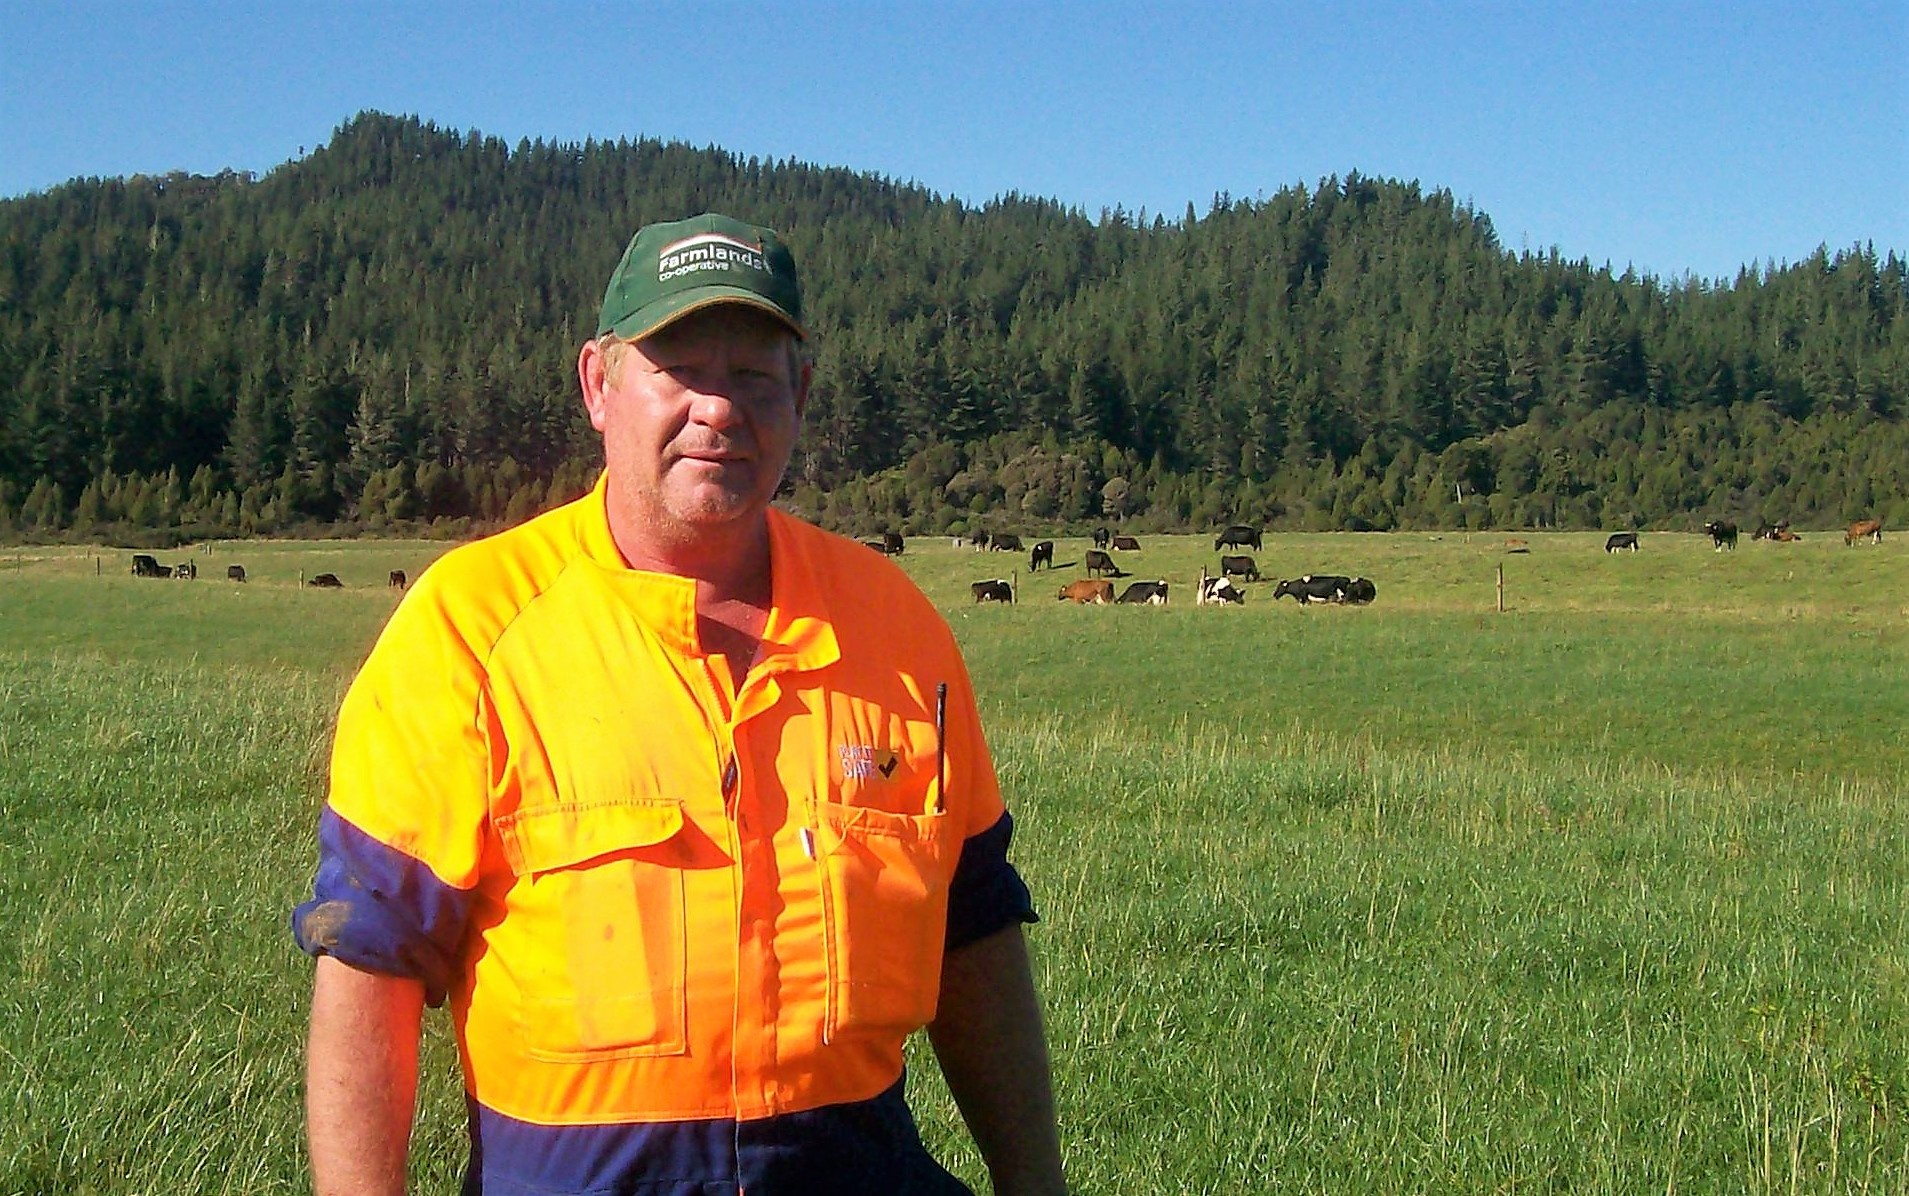 Neil Allers - His farm software gets information all in one place